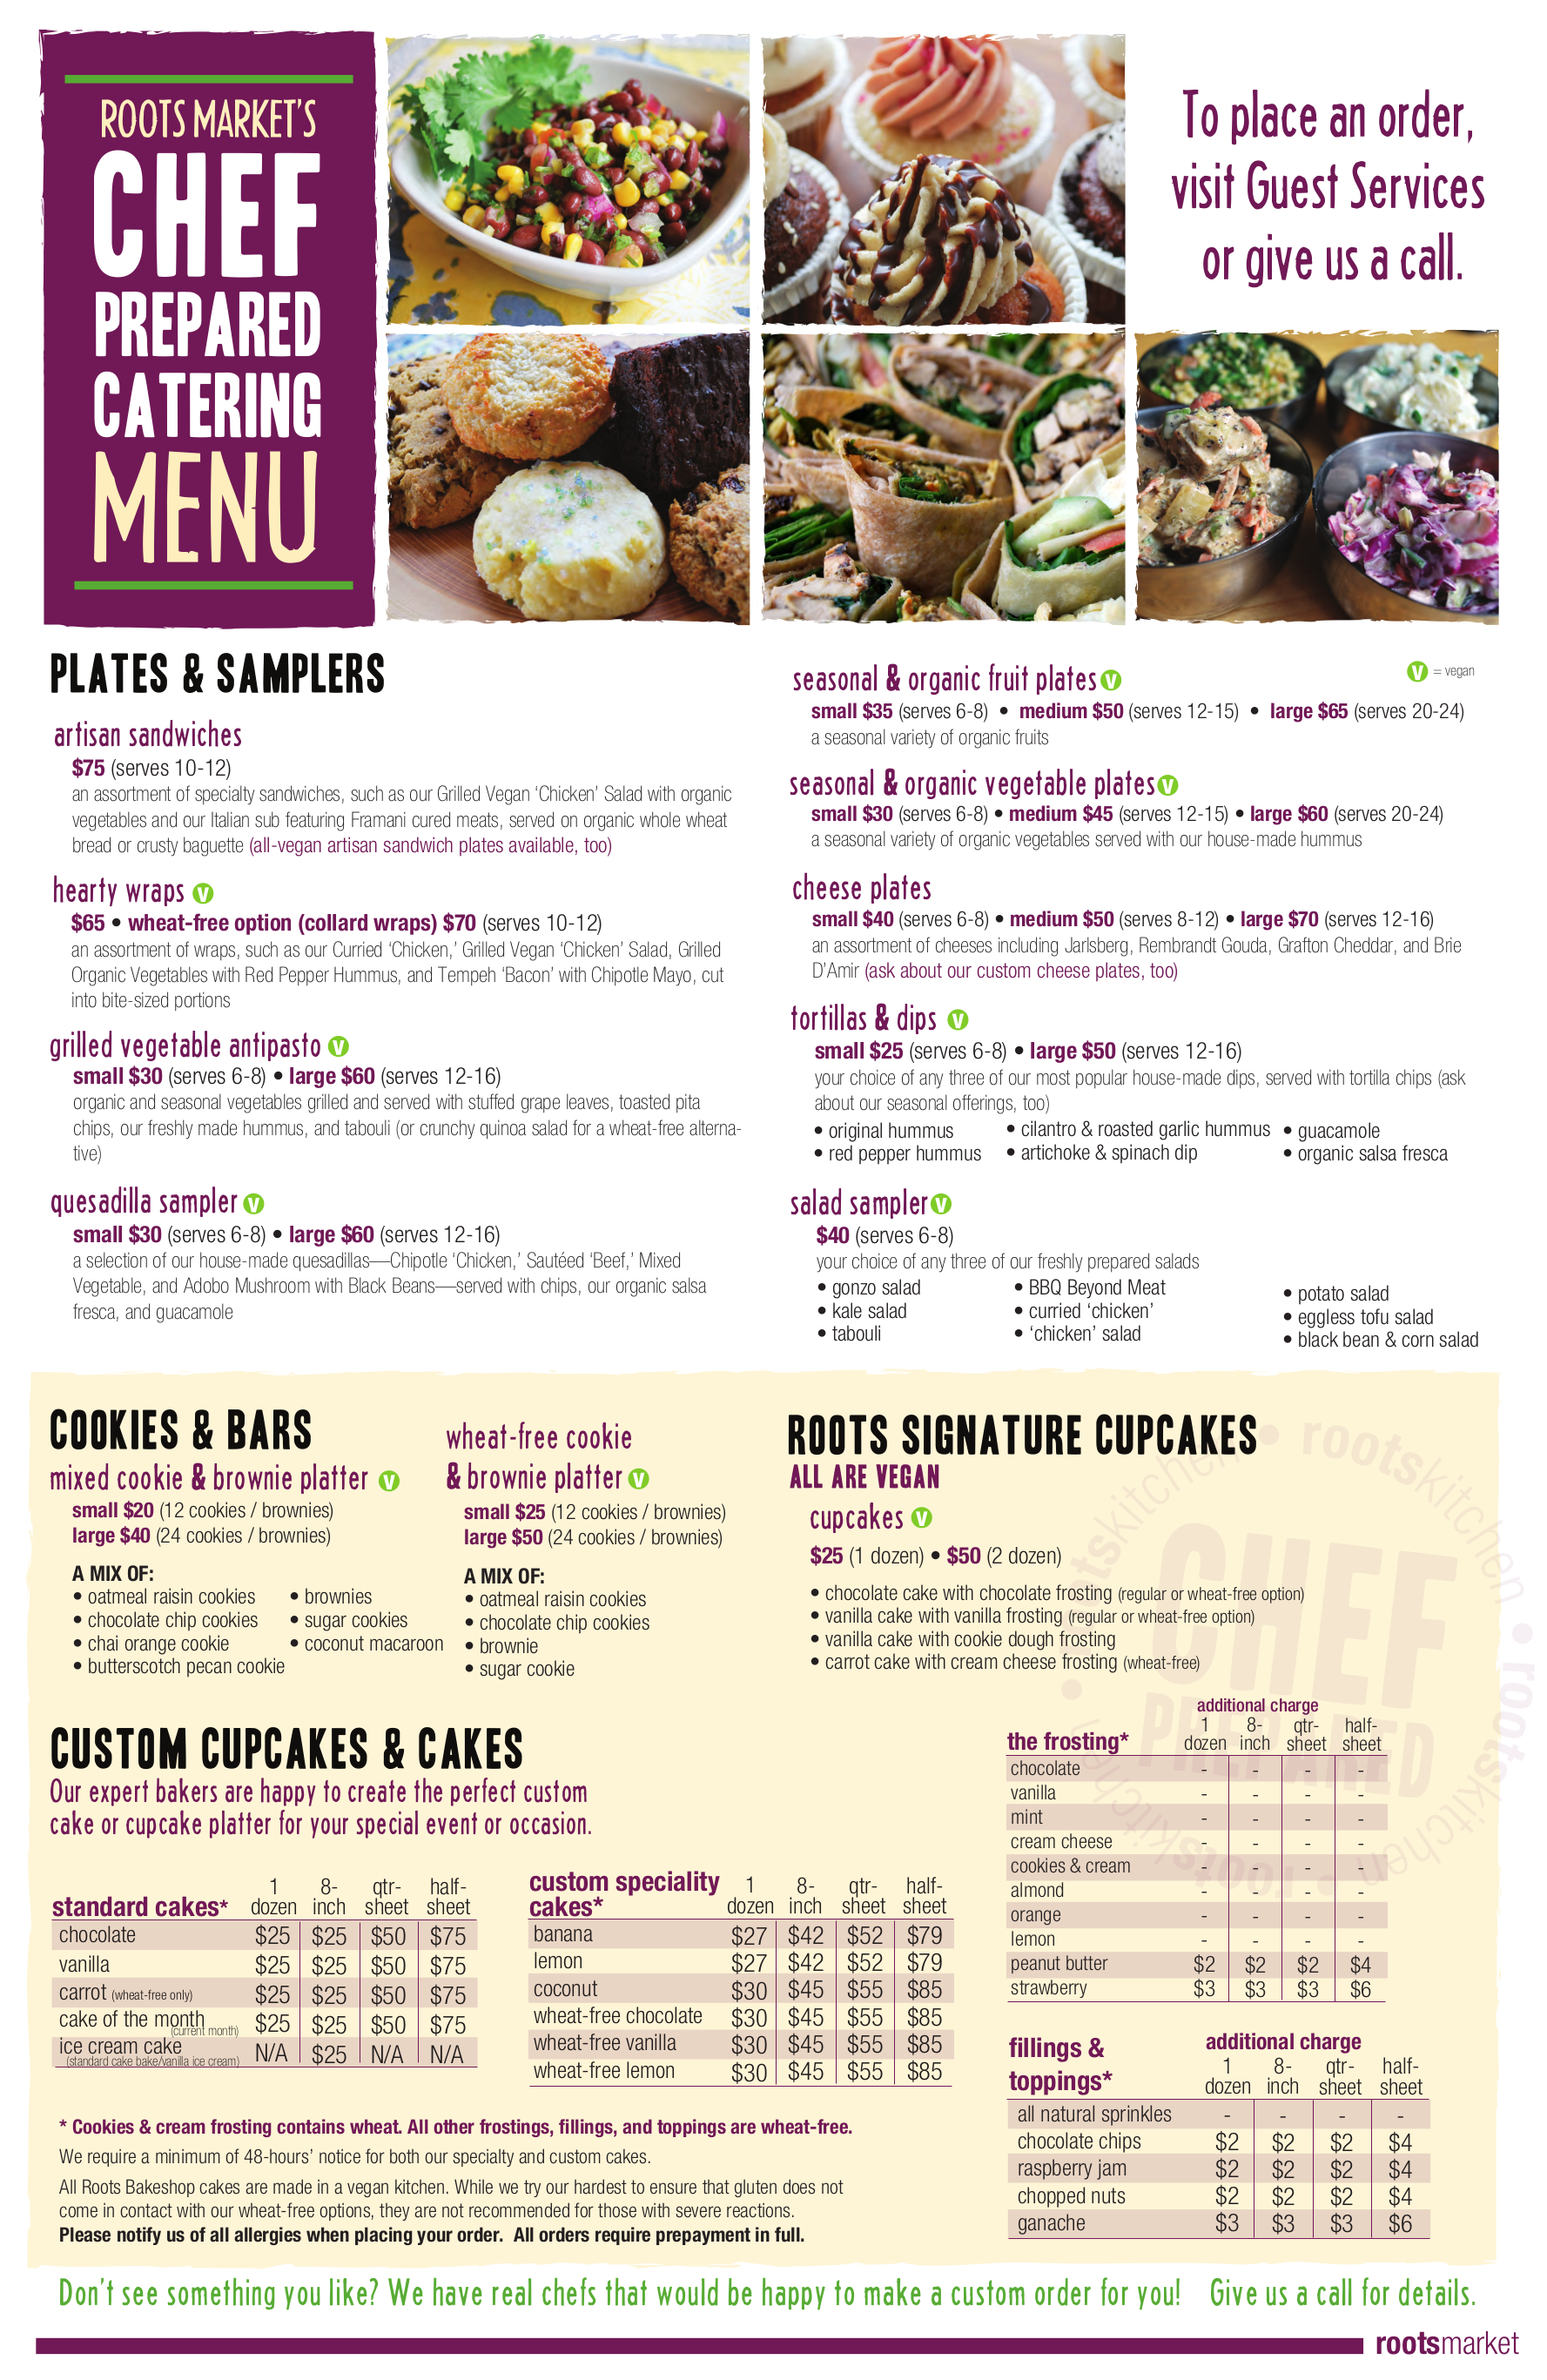 Roots Market - Catering Menu